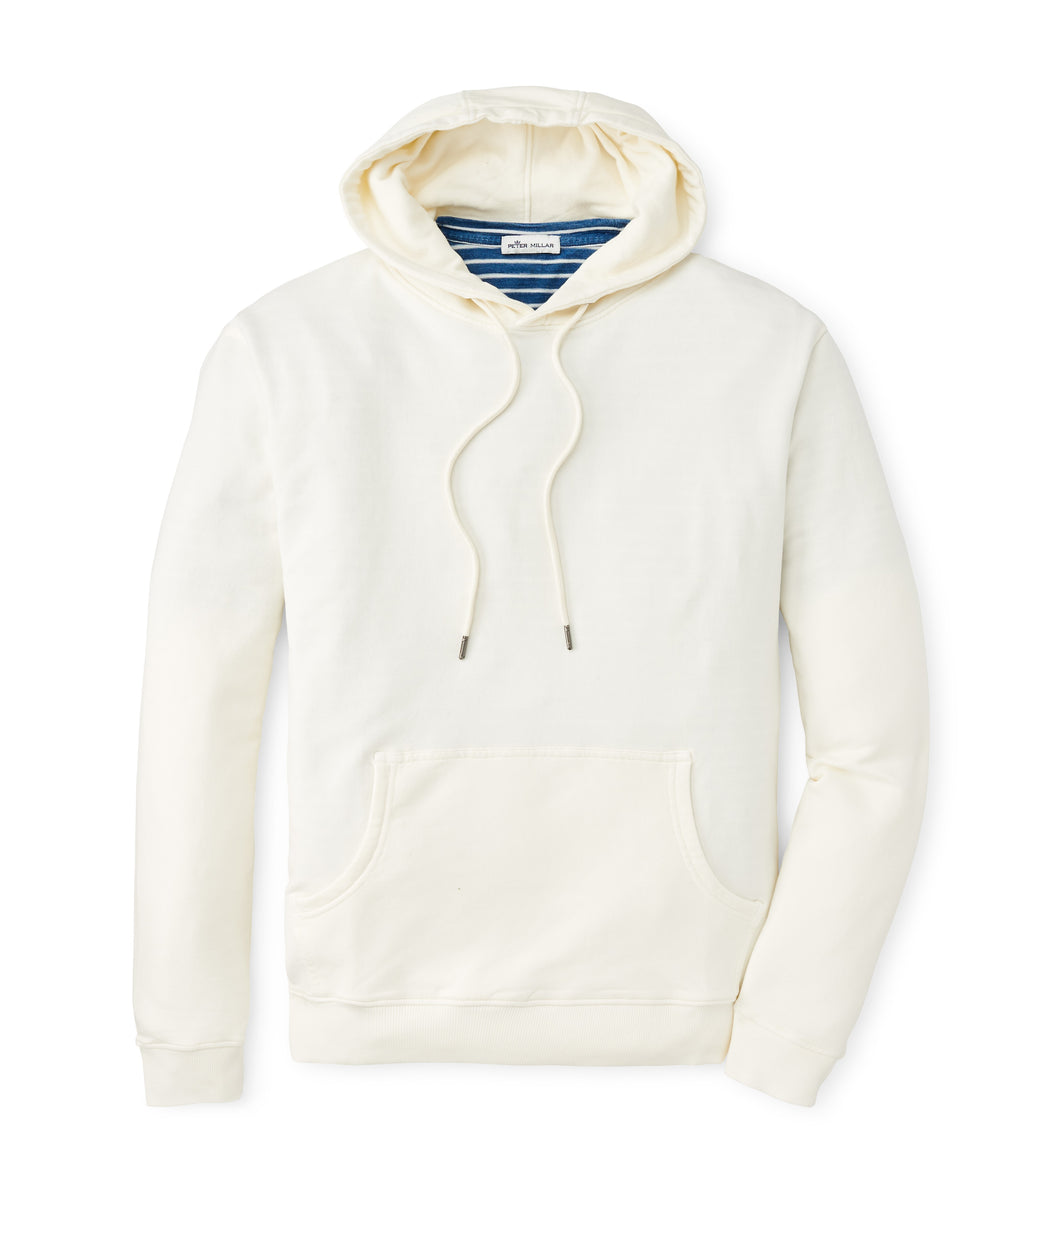 Peter Millar Lava Wash Cotton-Blend Hoodie in Salt Water Taffy